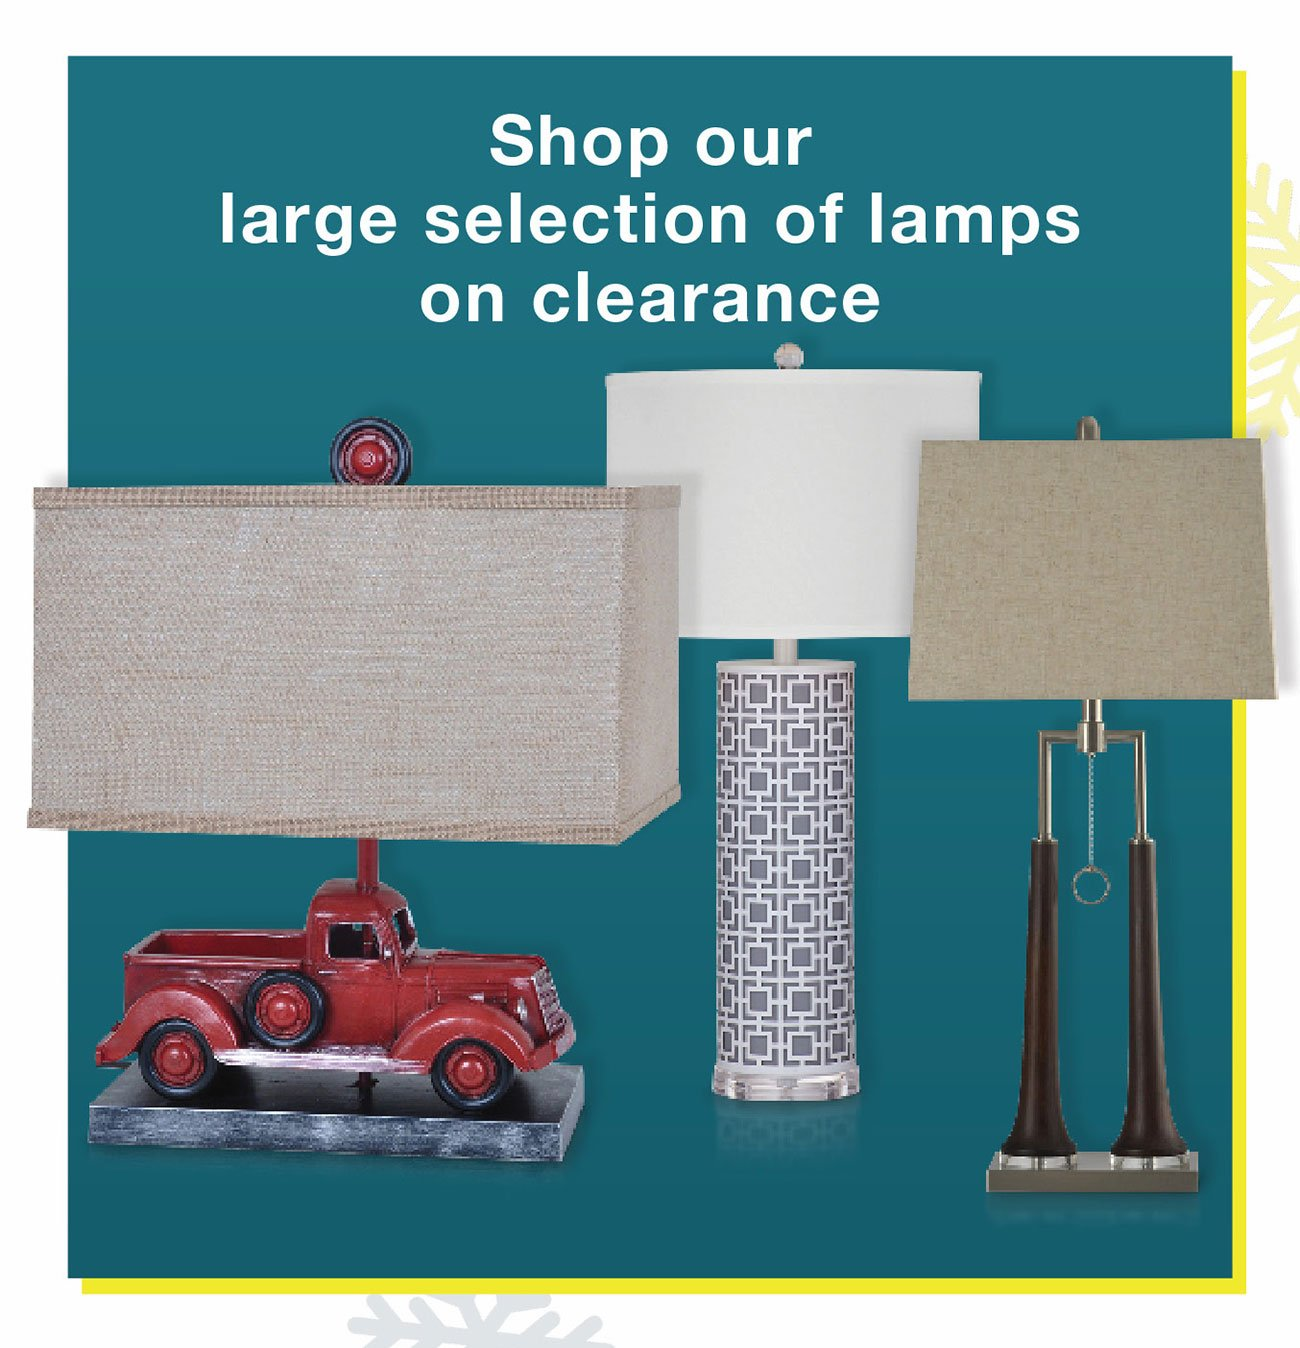 Lamps-on-clearance